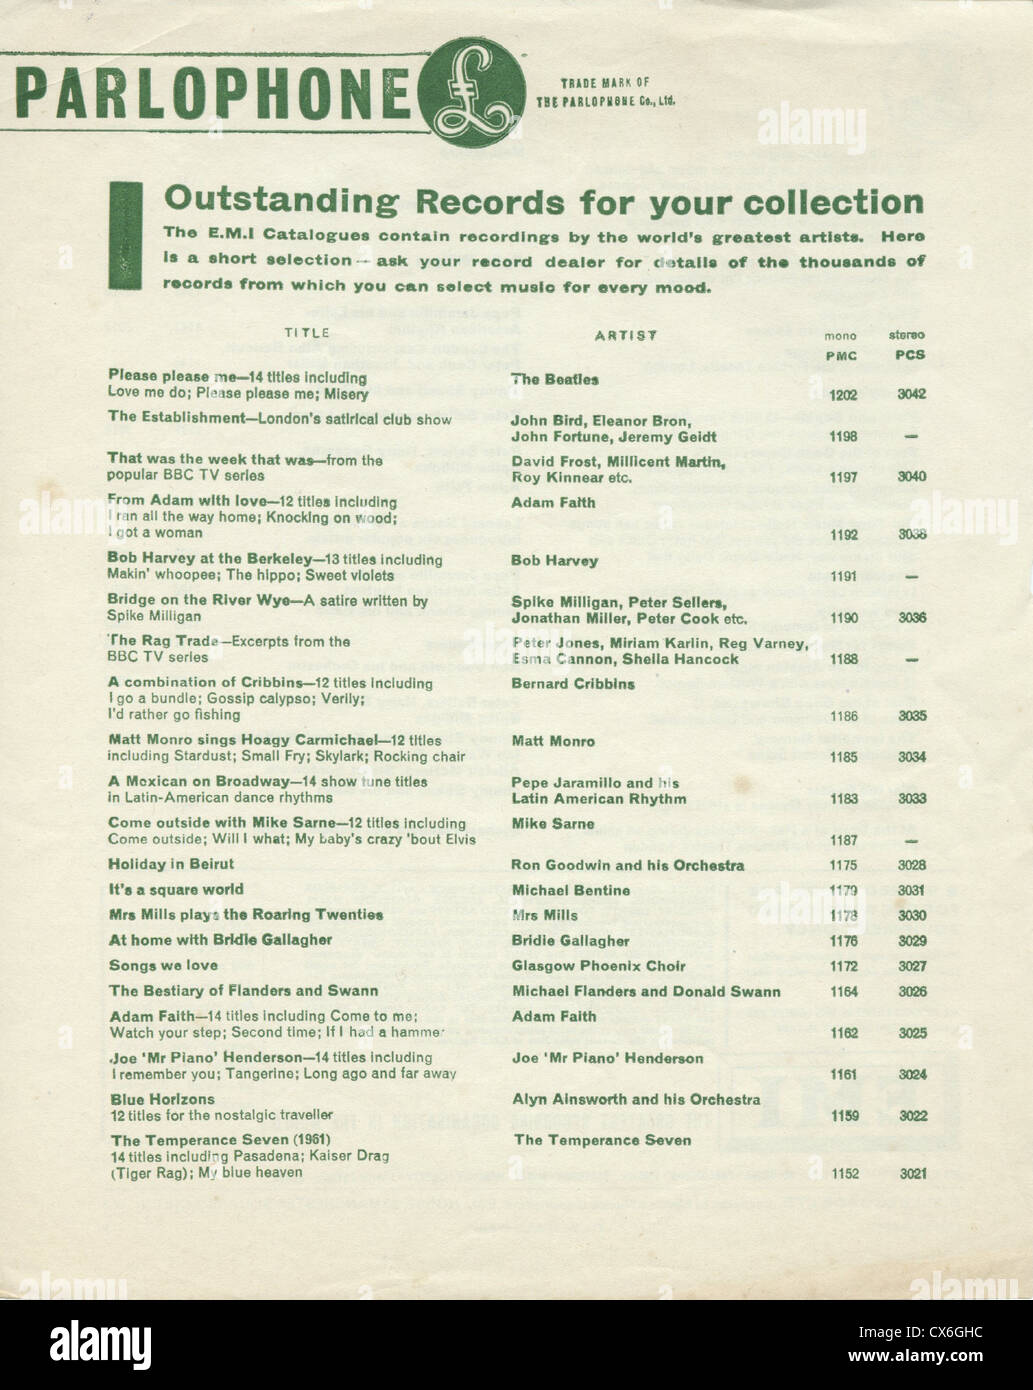 000629 - Parlophone Records 1963 Promotional Flyer - Stock Image